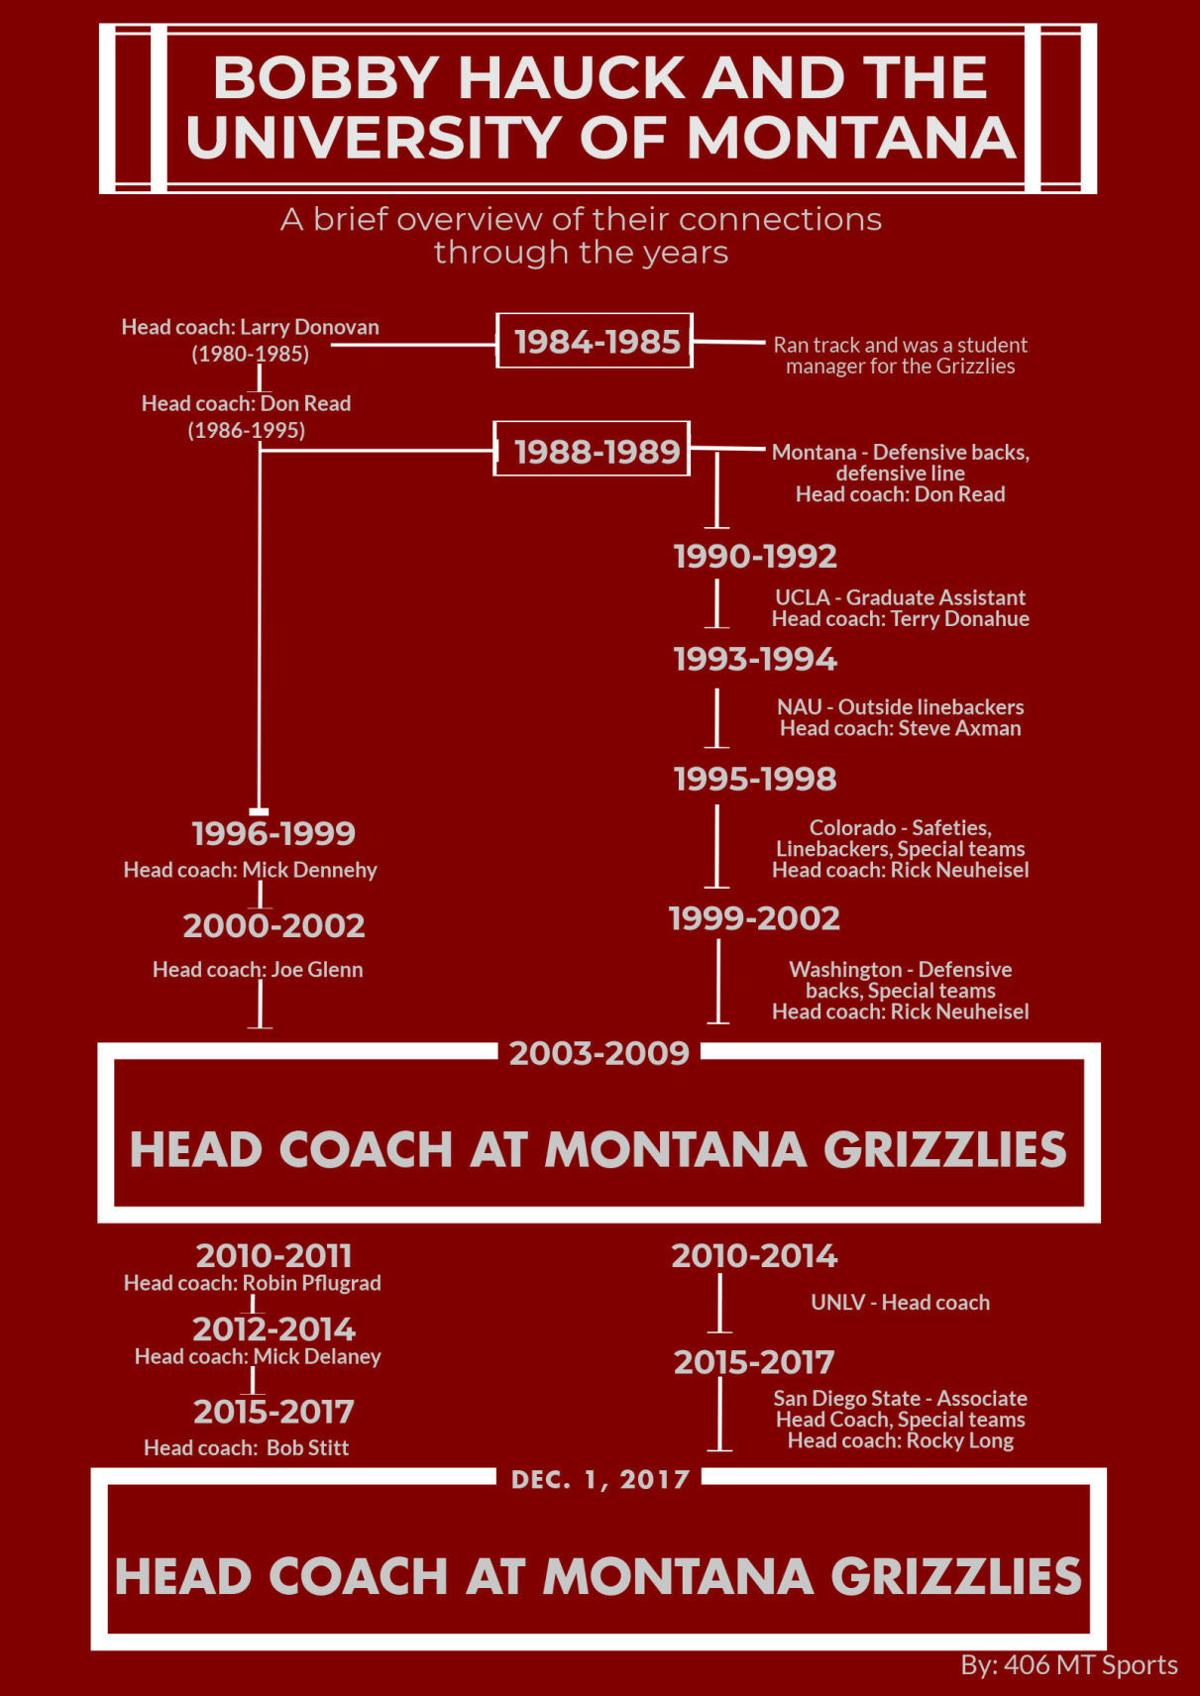 Timeline of Bobby Hauck's coaching career